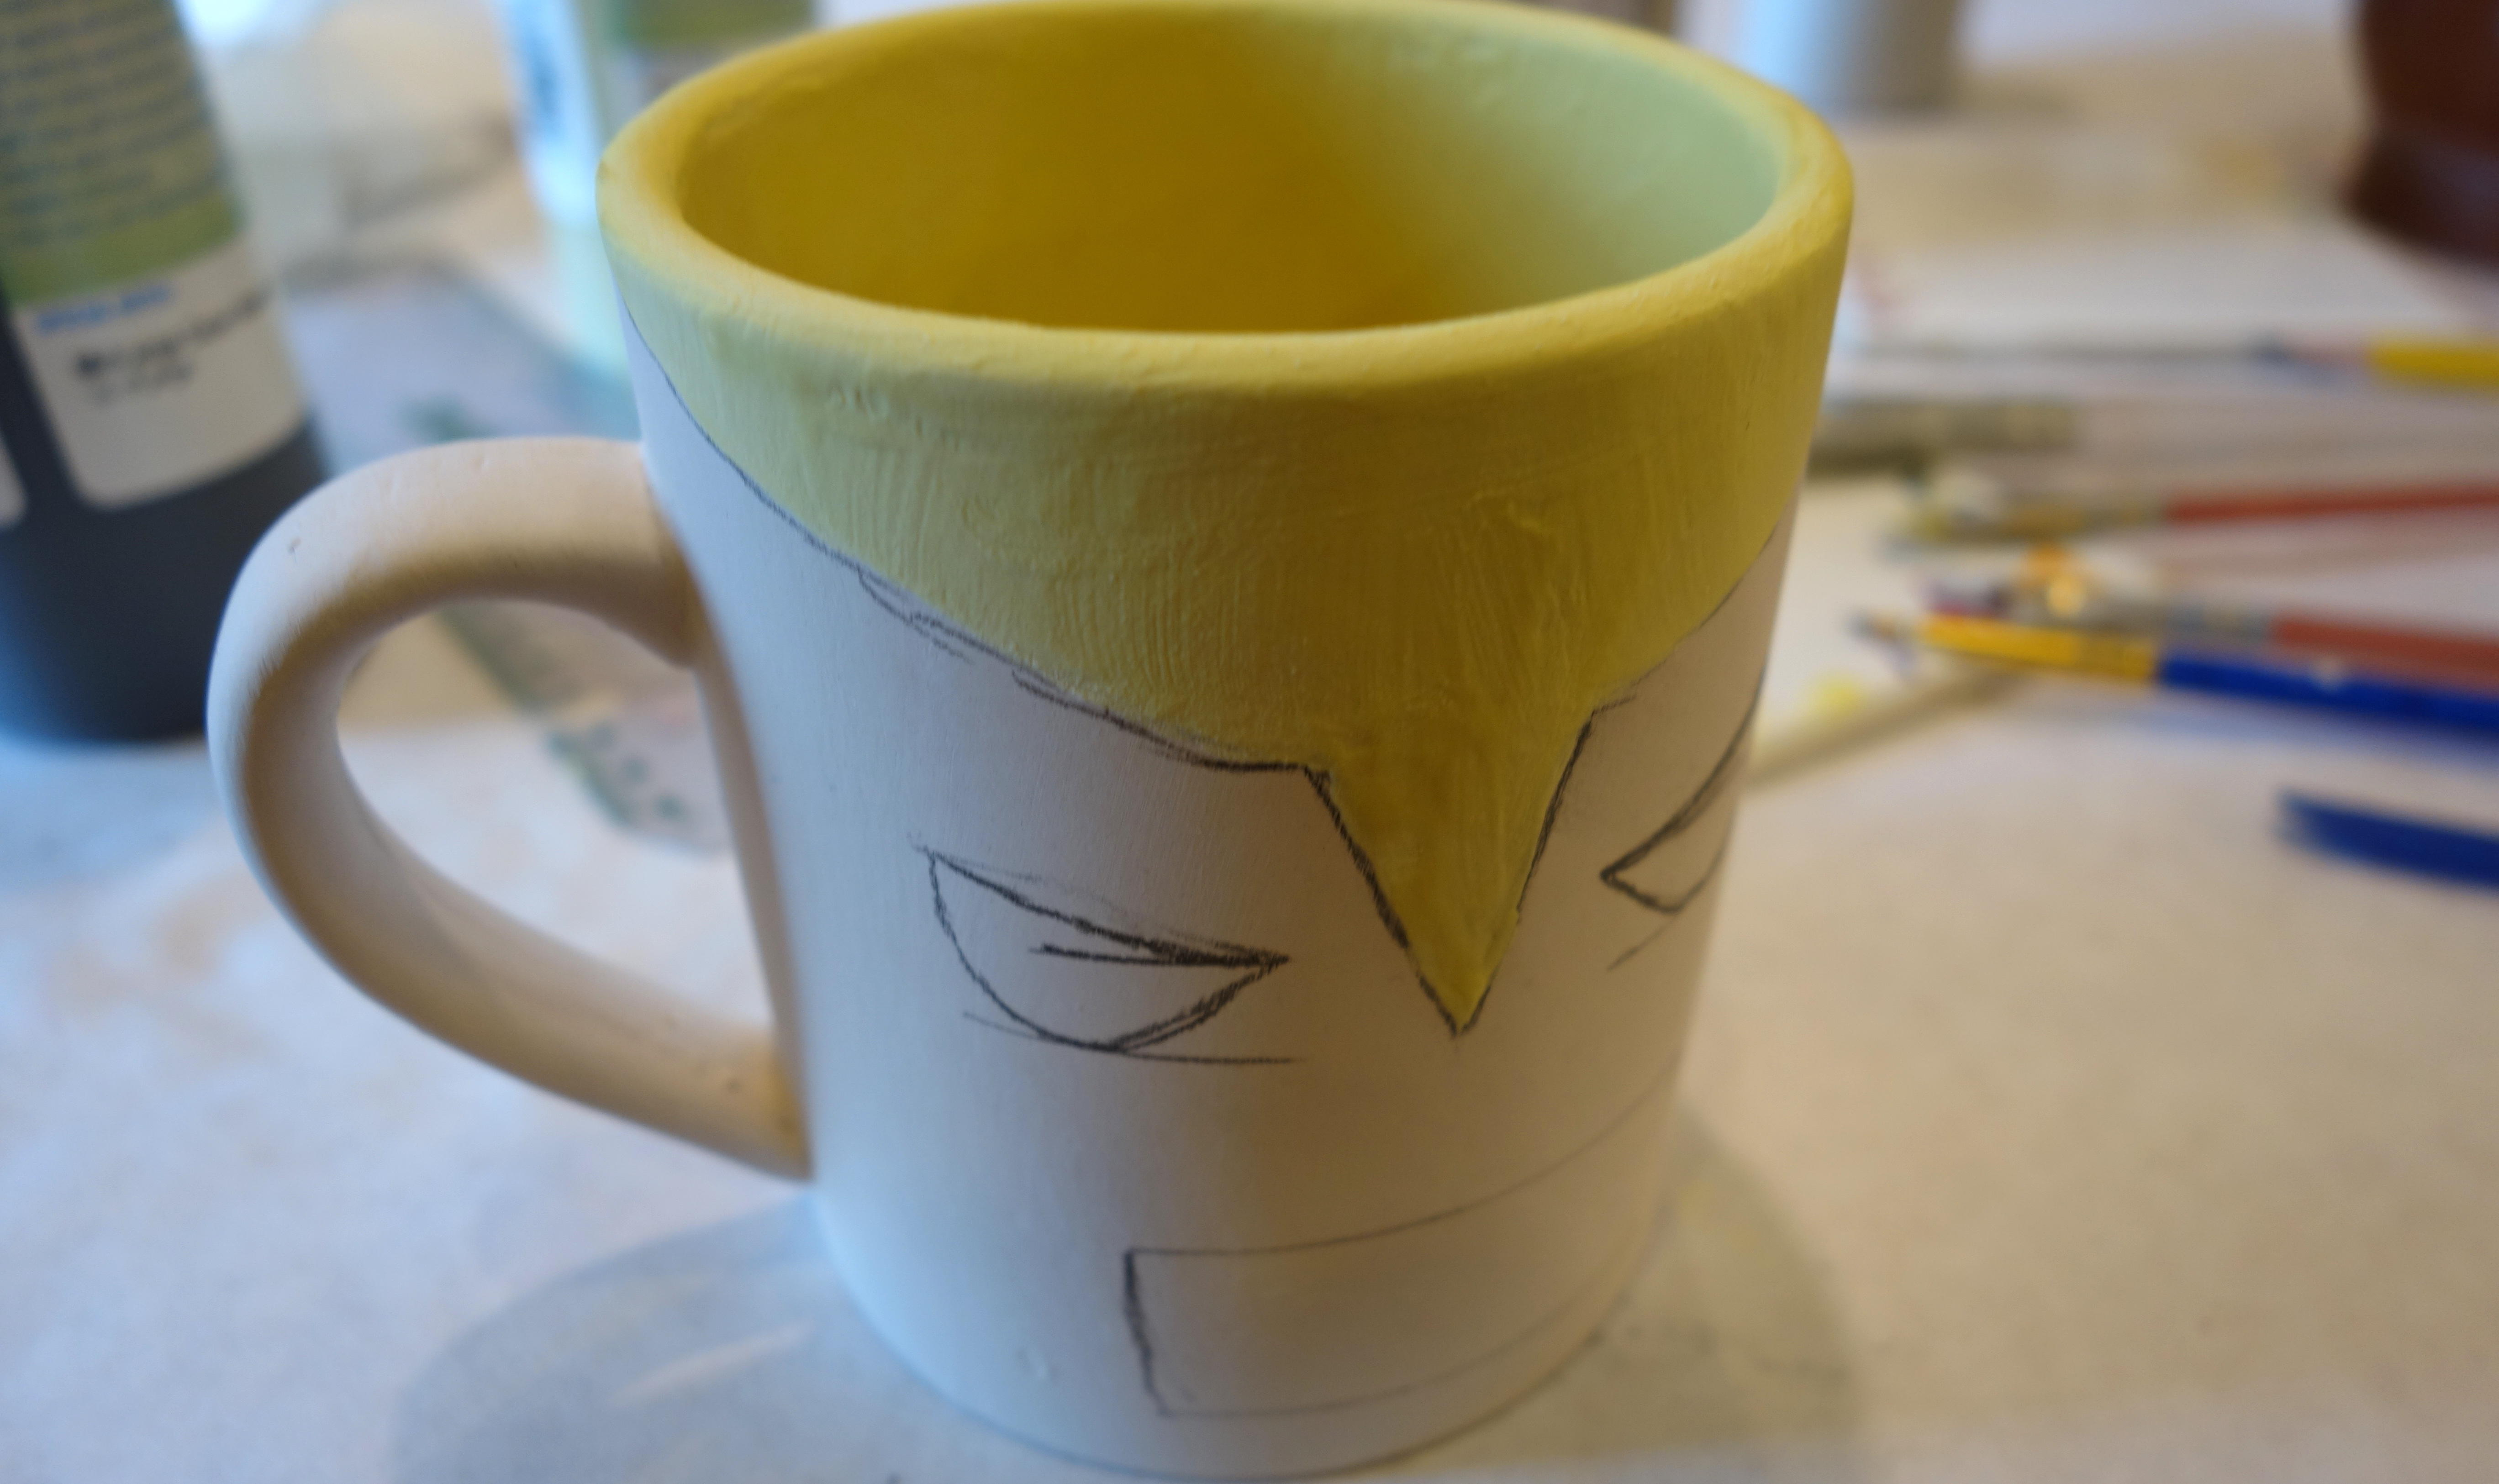 DIY Wolverine Mug Craft - Begin with the yellow paint on the outside of the mask